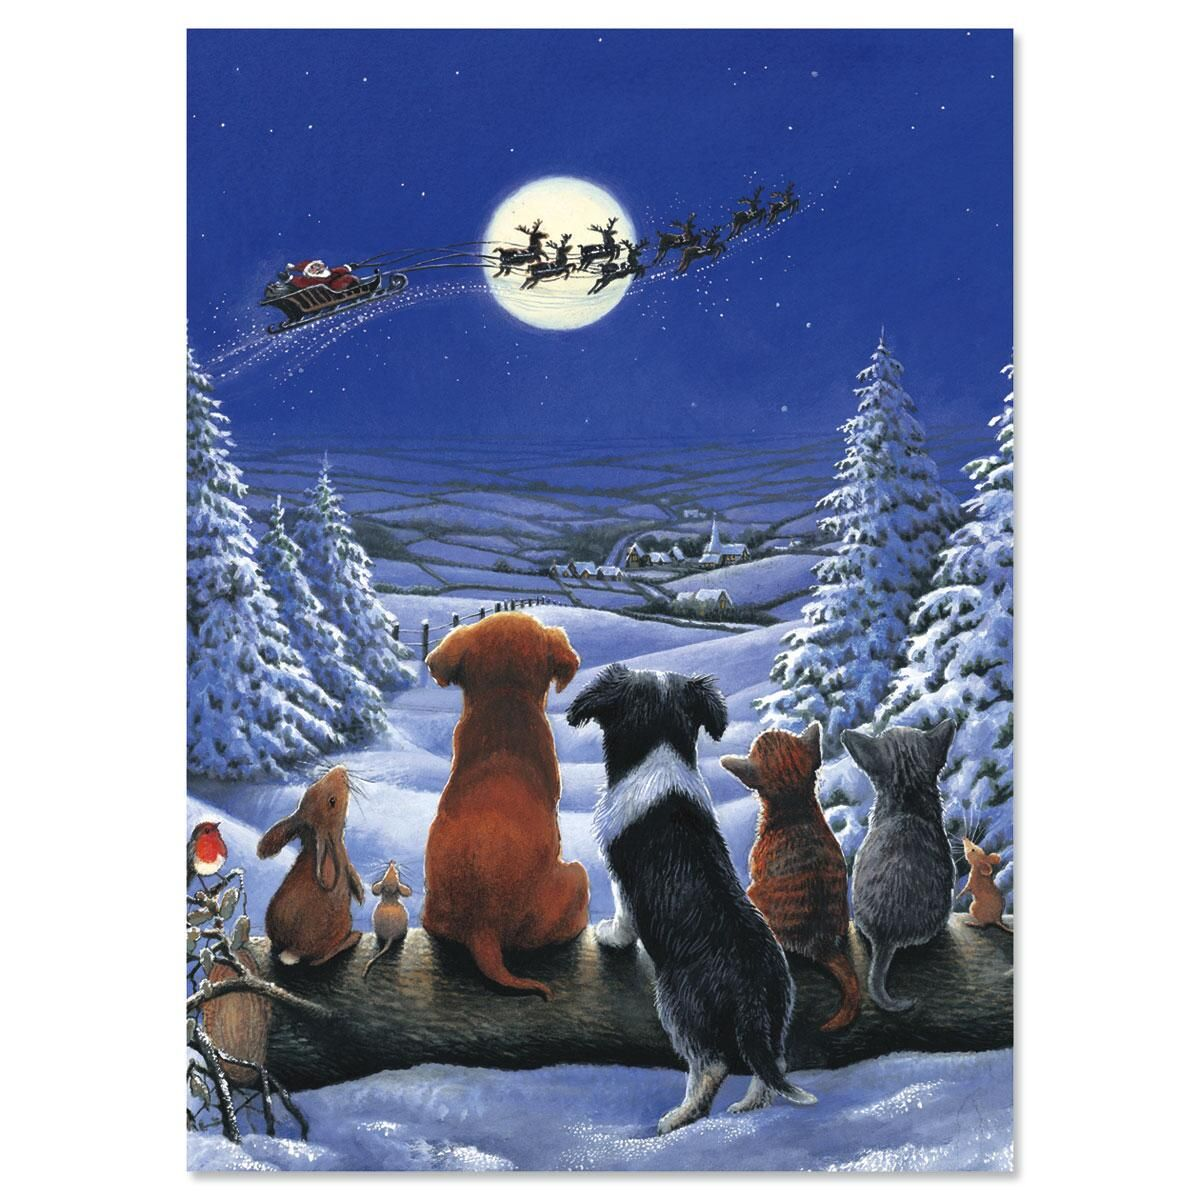 Christmas Dreams Nonpersonalized Christmas Cards - Set of 72